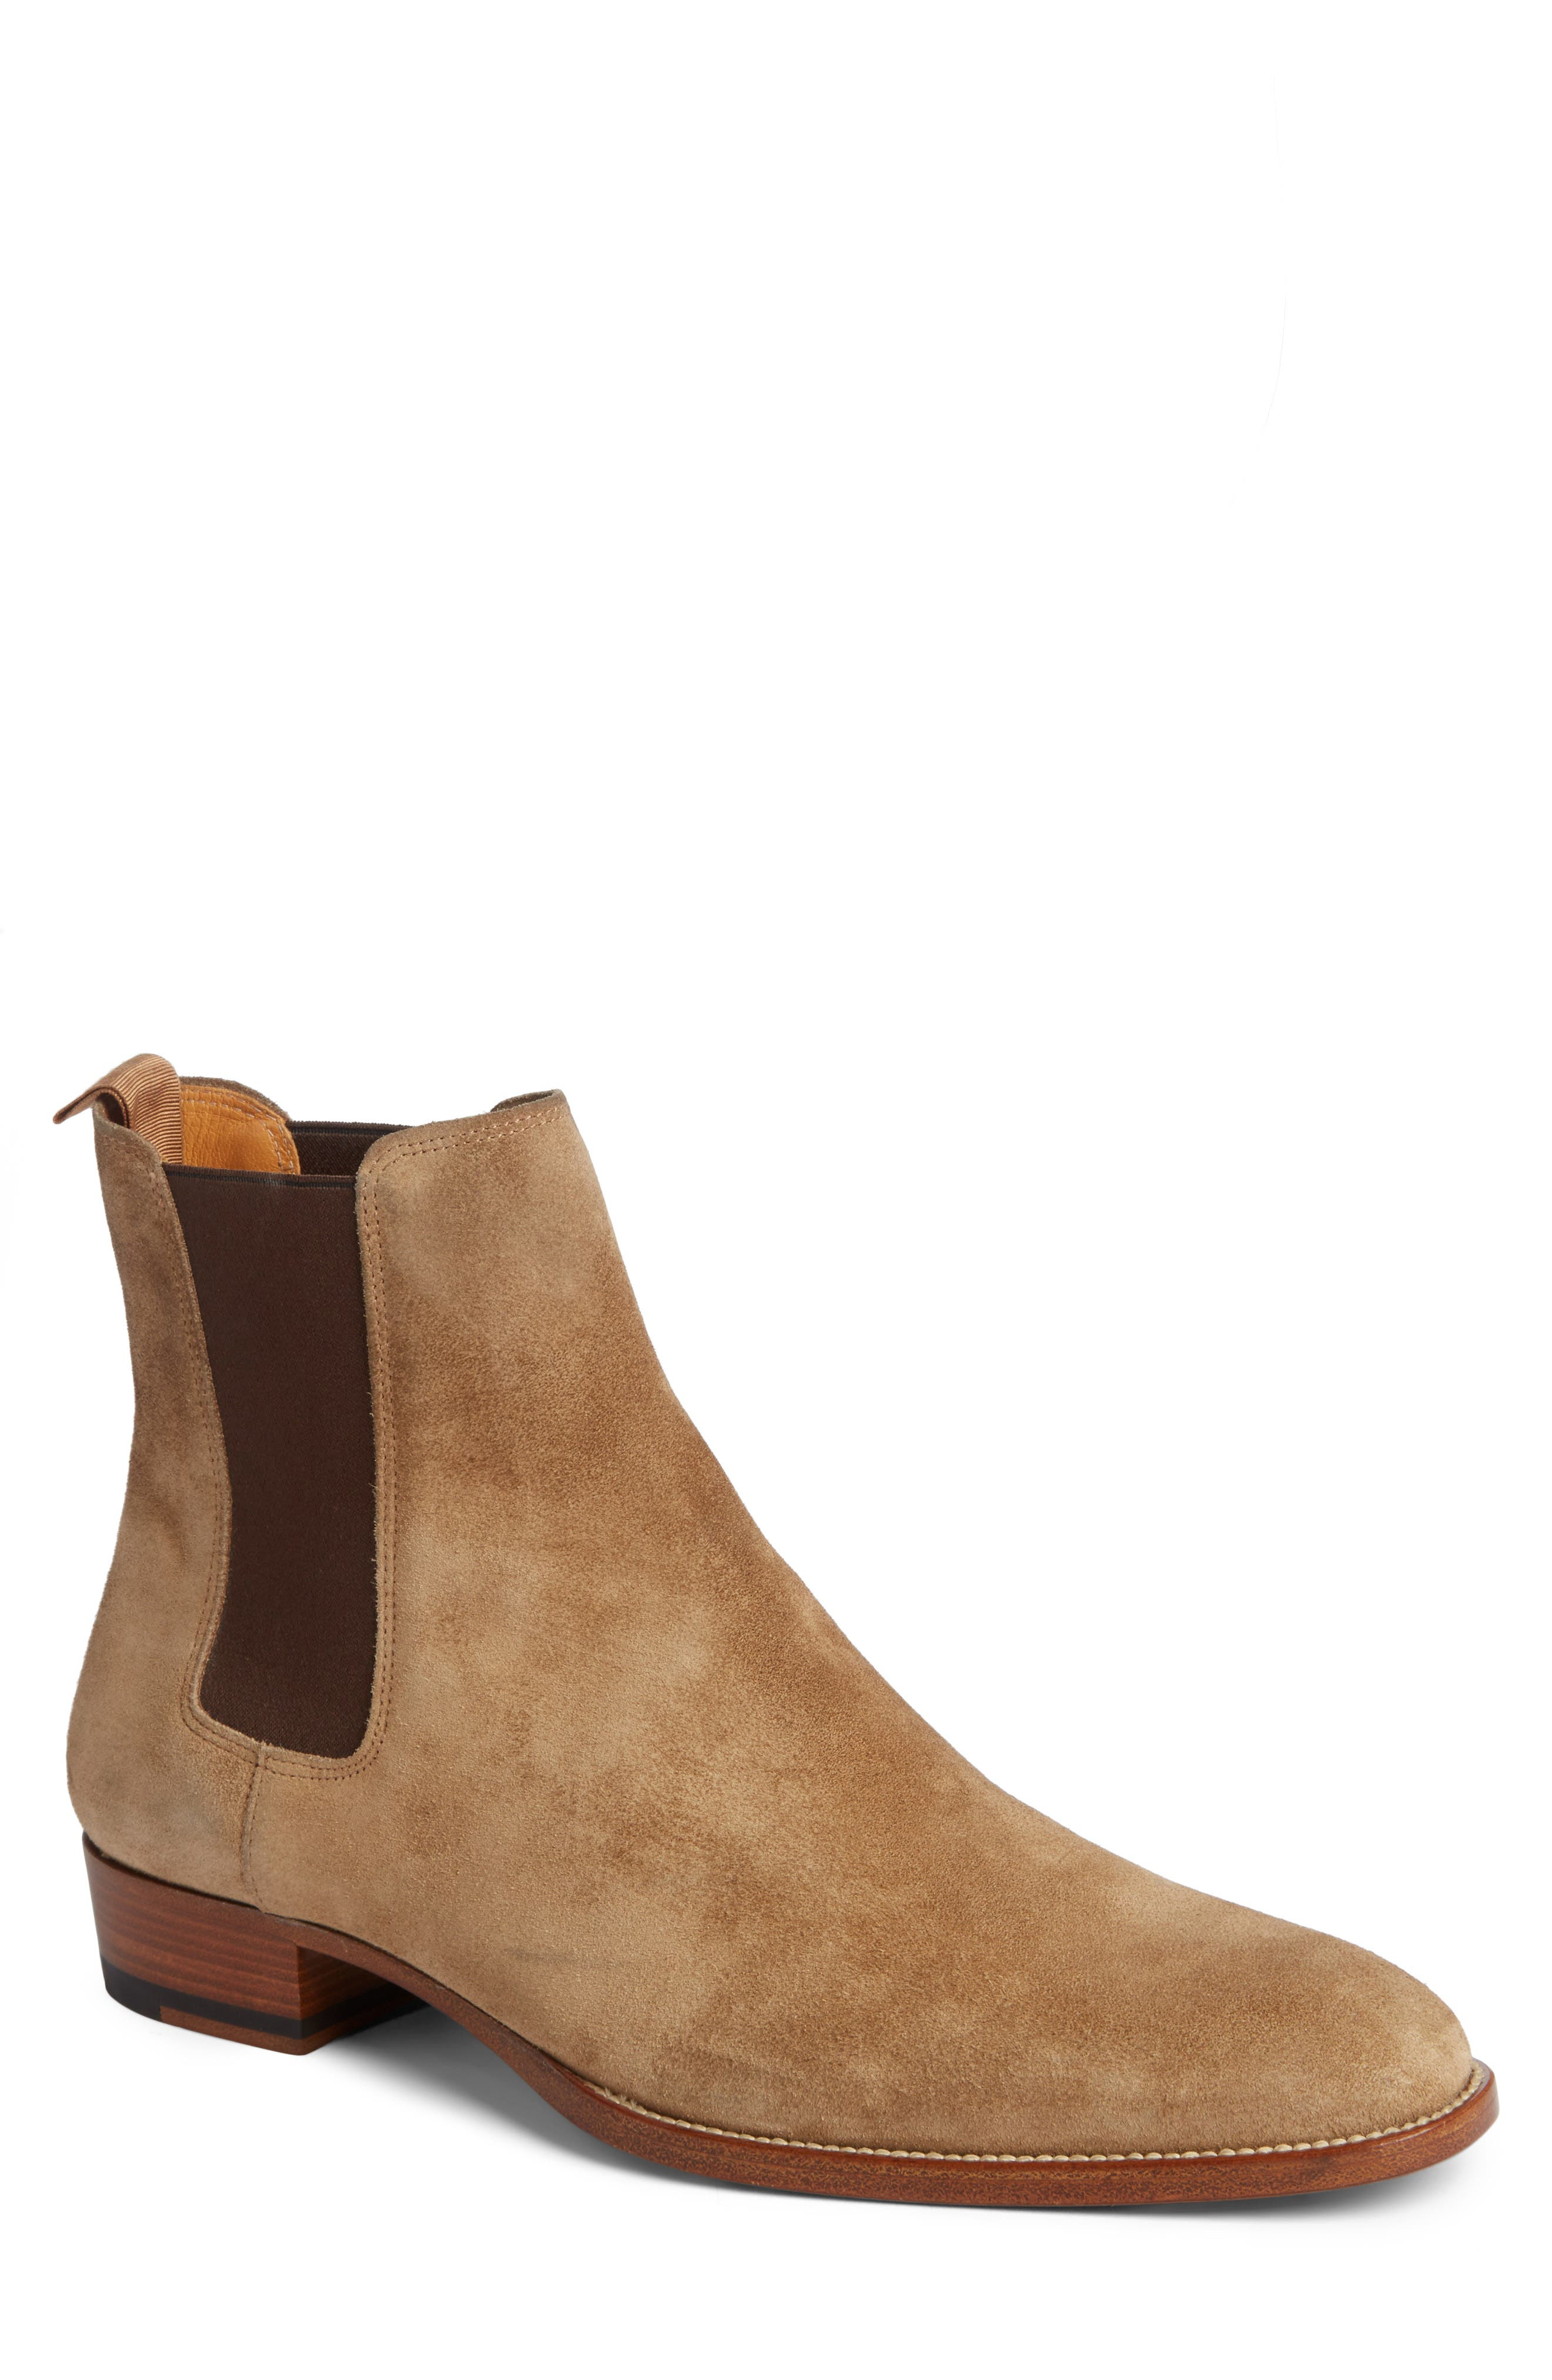 Wyatt Chelsea Boot,                             Main thumbnail 1, color,                             SIGARO SUEDE